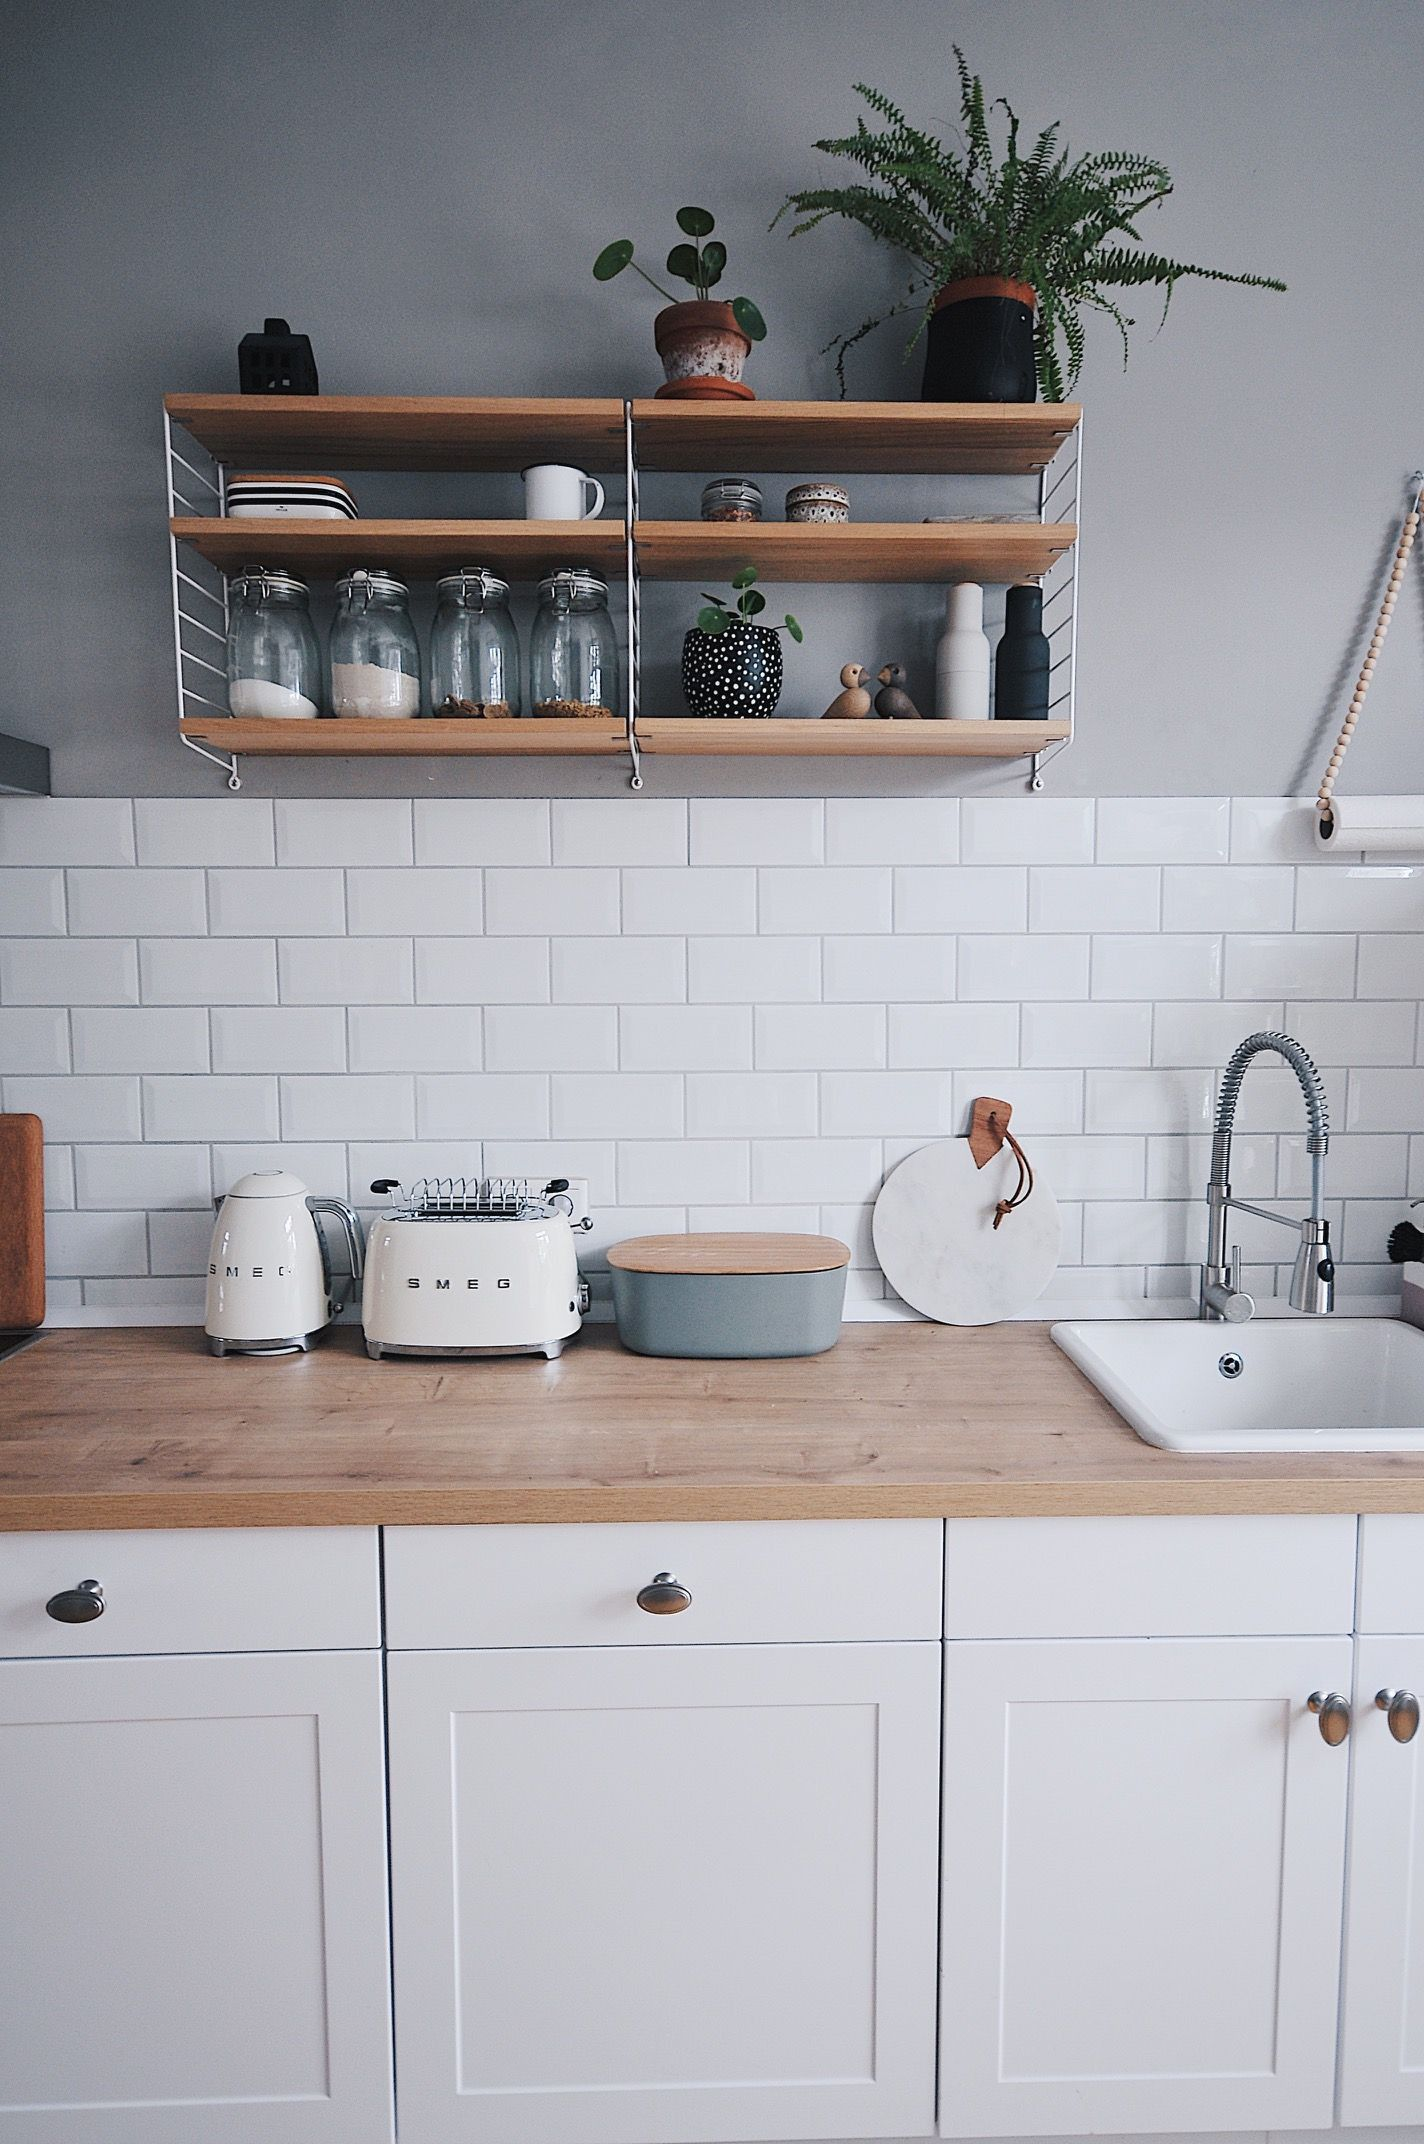 27+ Idee credence cuisine moderne trends